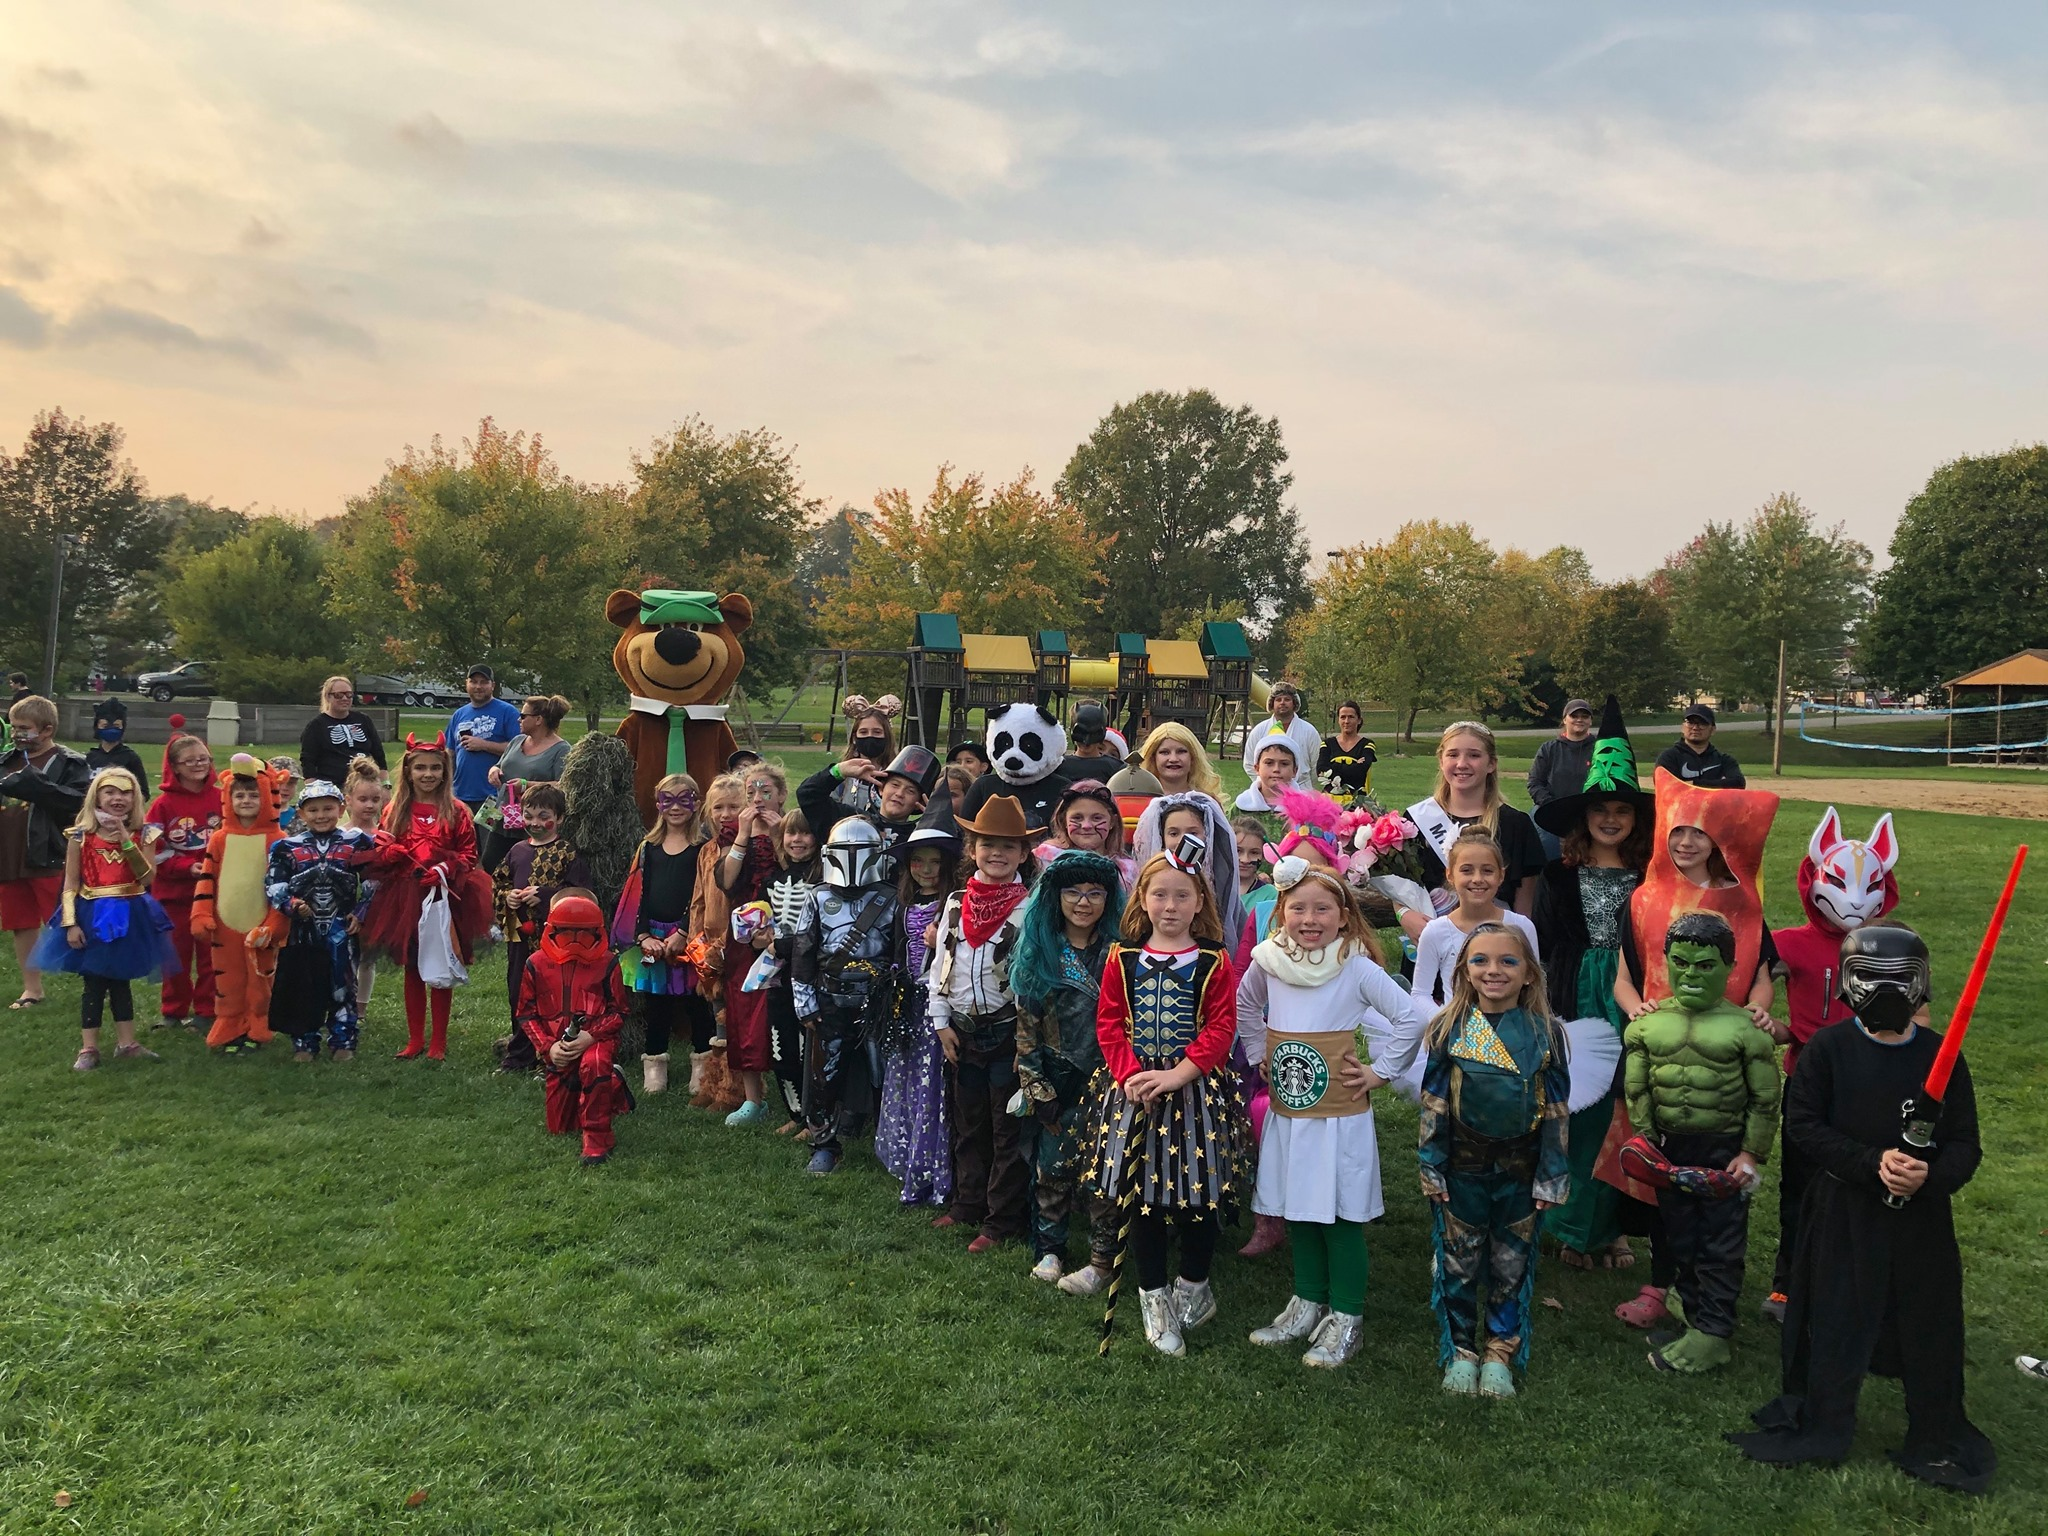 Kids in halloween costumes with Yogi Bear at campground.